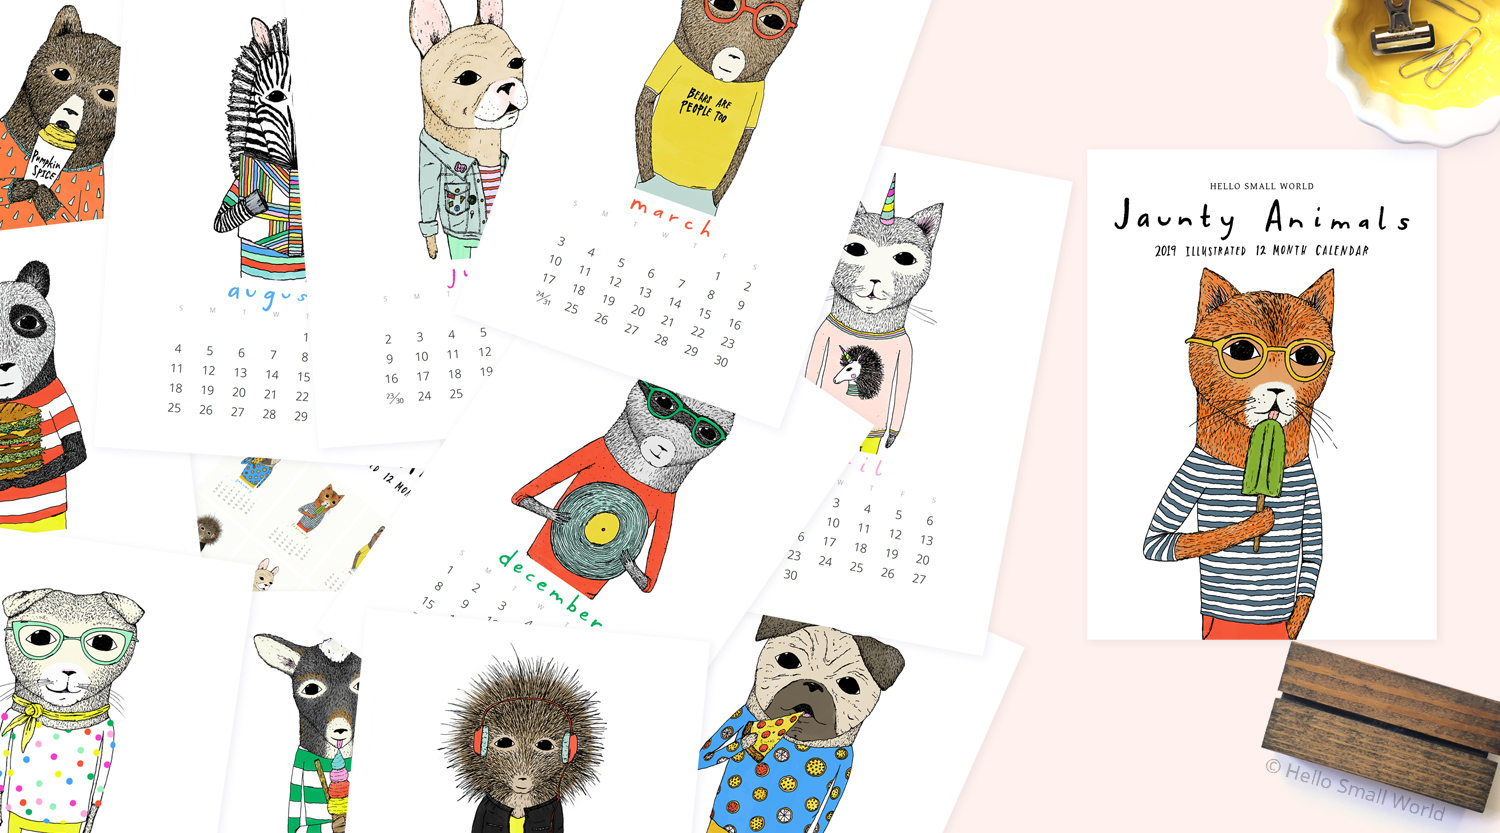 2019 calendar of jaunty animals, 2019 desk calendar, 2019 wall calendar, pizza pug, cool cat, reading zebra, ice cream eating pygmy goat